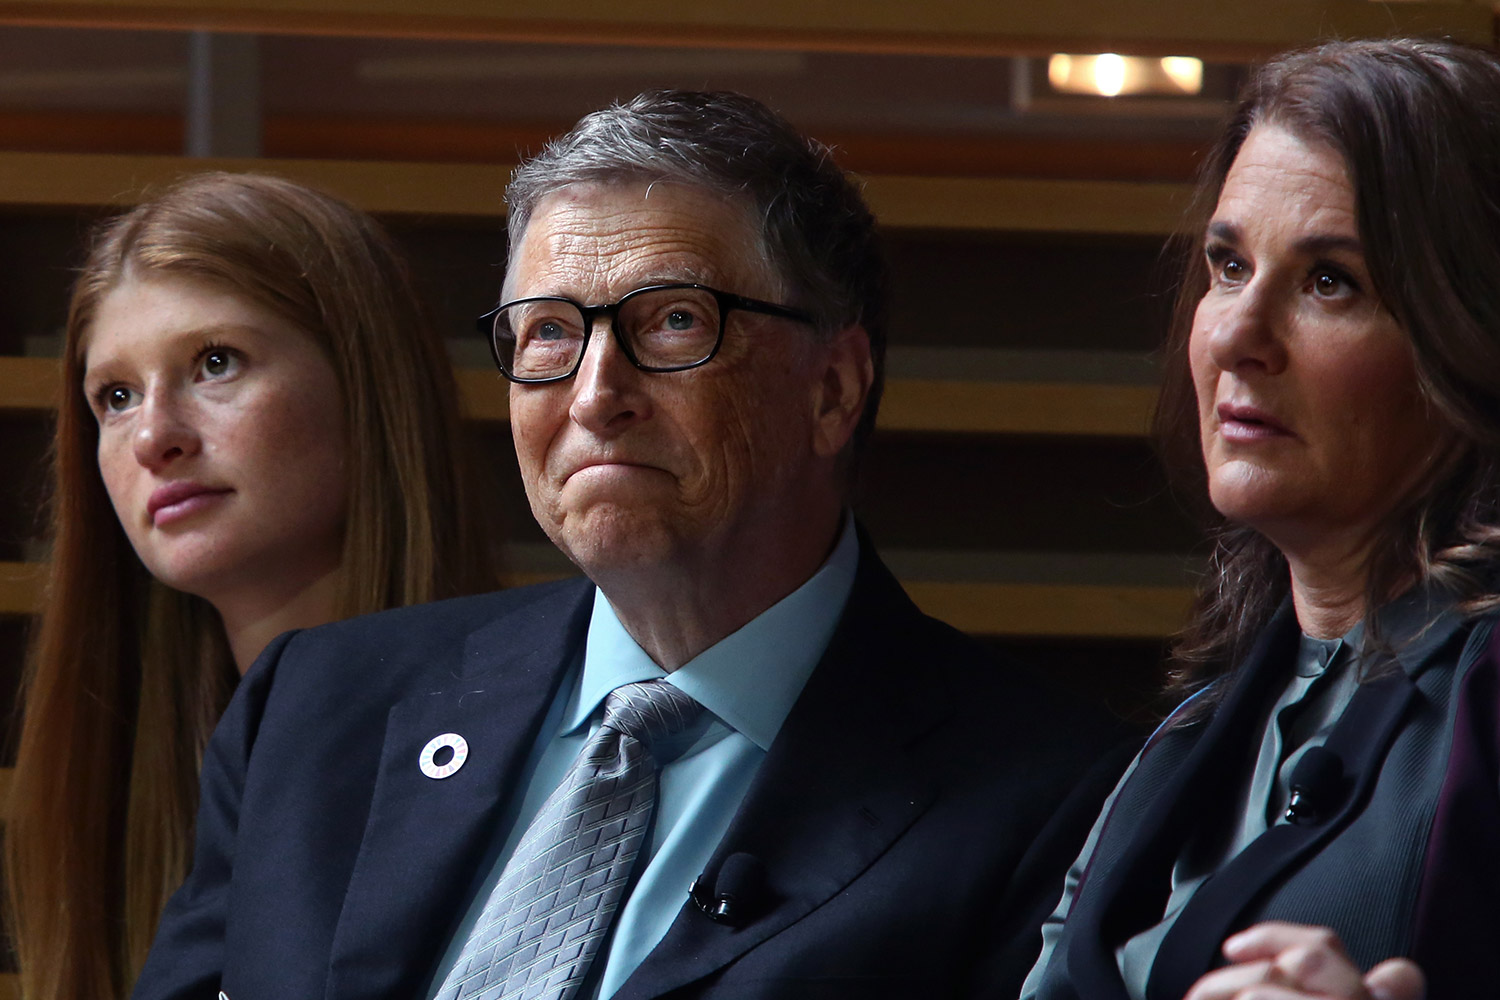 Jennifer Gates and her parents, Bill and Melinda Gates